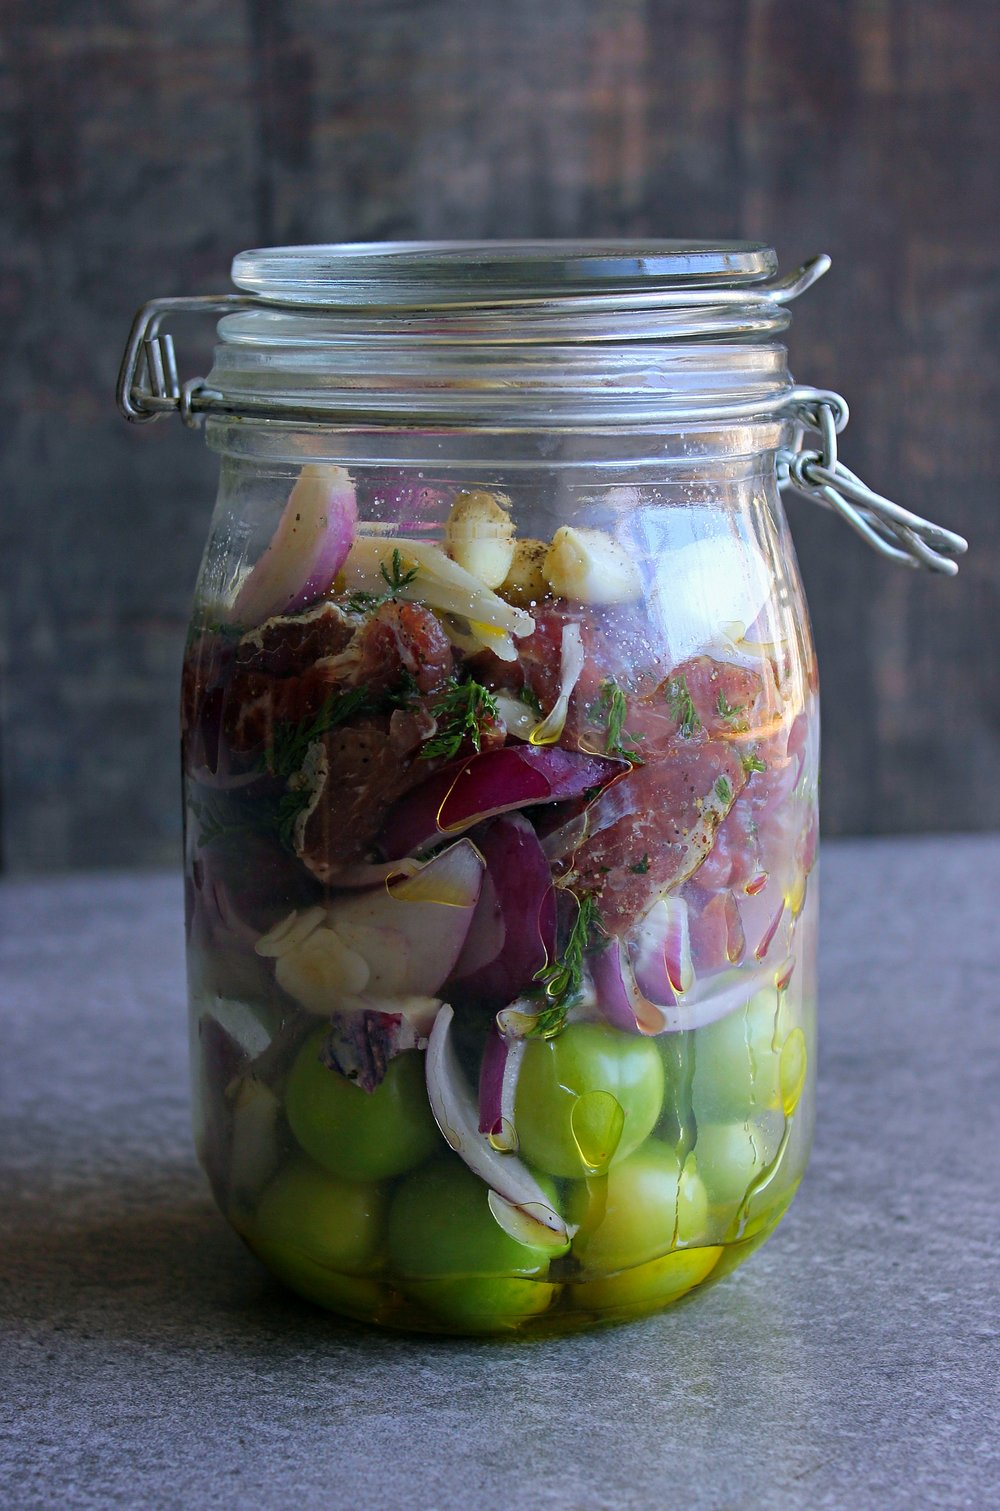 """This is one of my favourites, so simple and yet so delicious! It's a jar with mirabelle plums, garlic, onion, beef and yarrow, baked in the oven at low temperatures."""